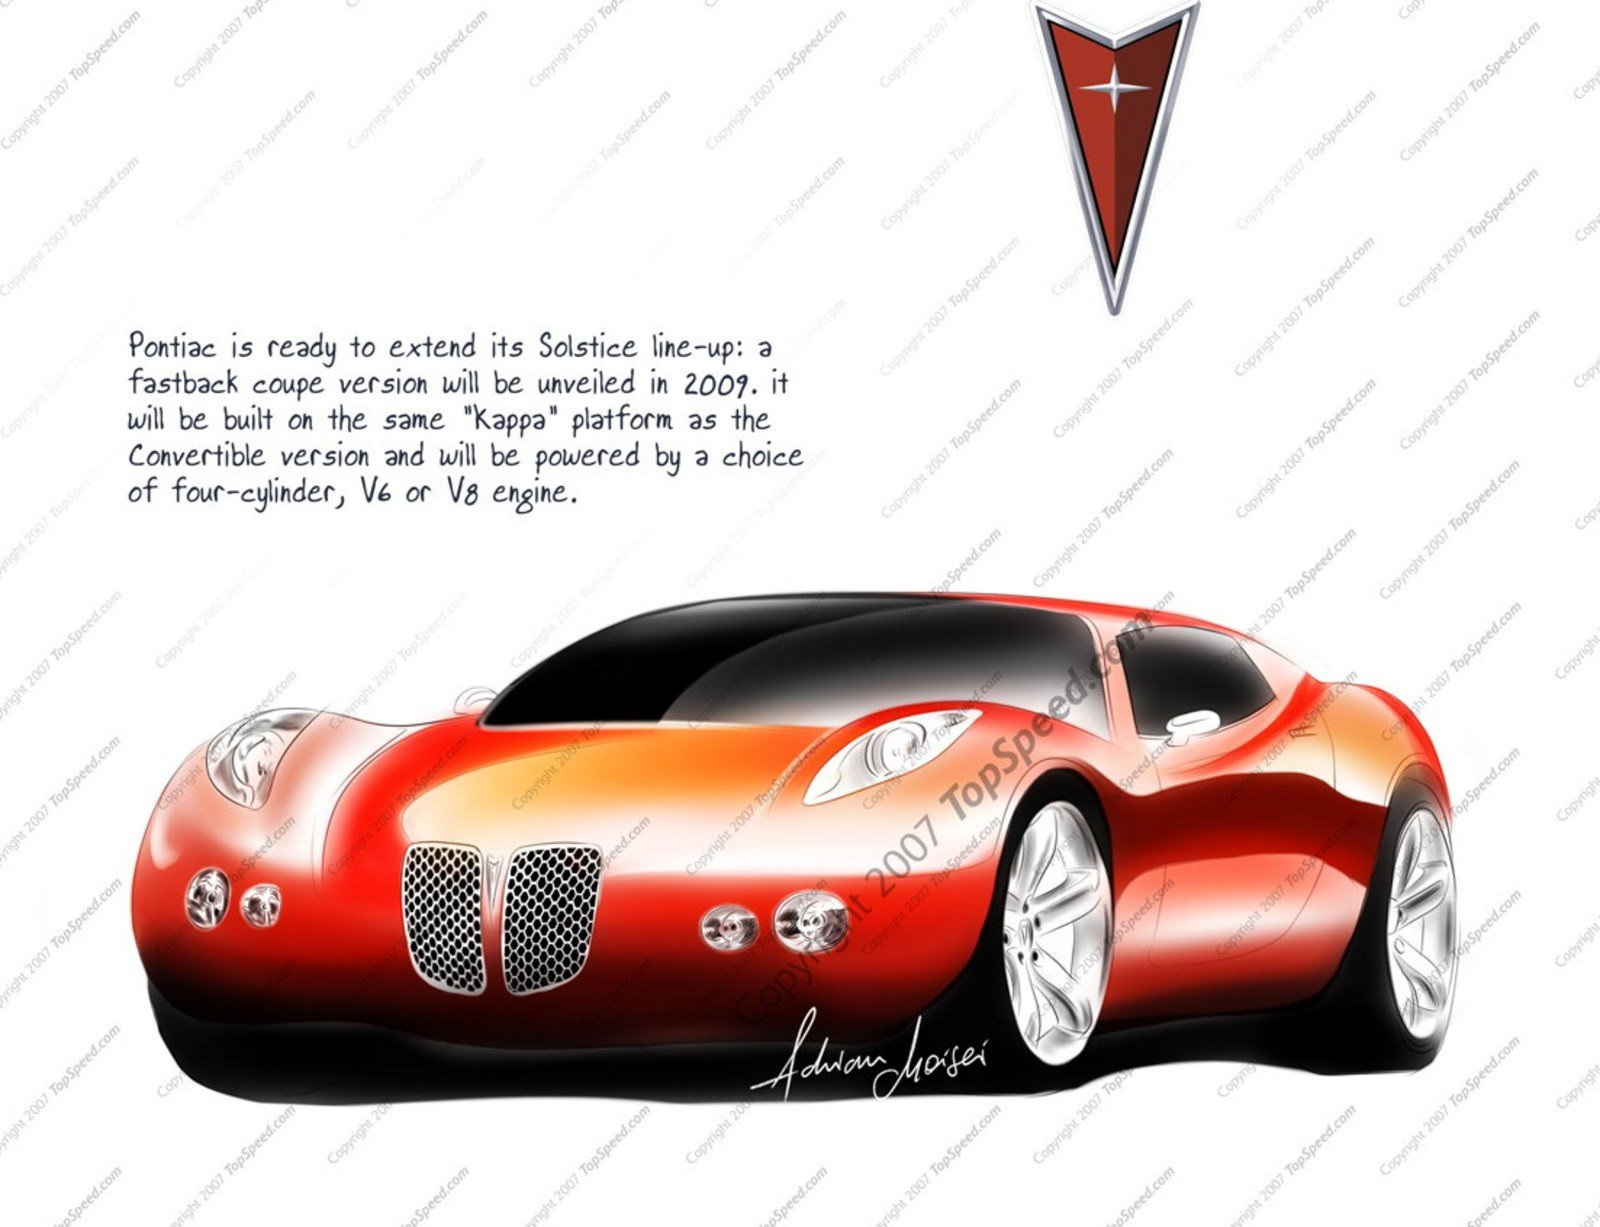 2009 Pontiac Solstice Coupe Preview News Top Speed